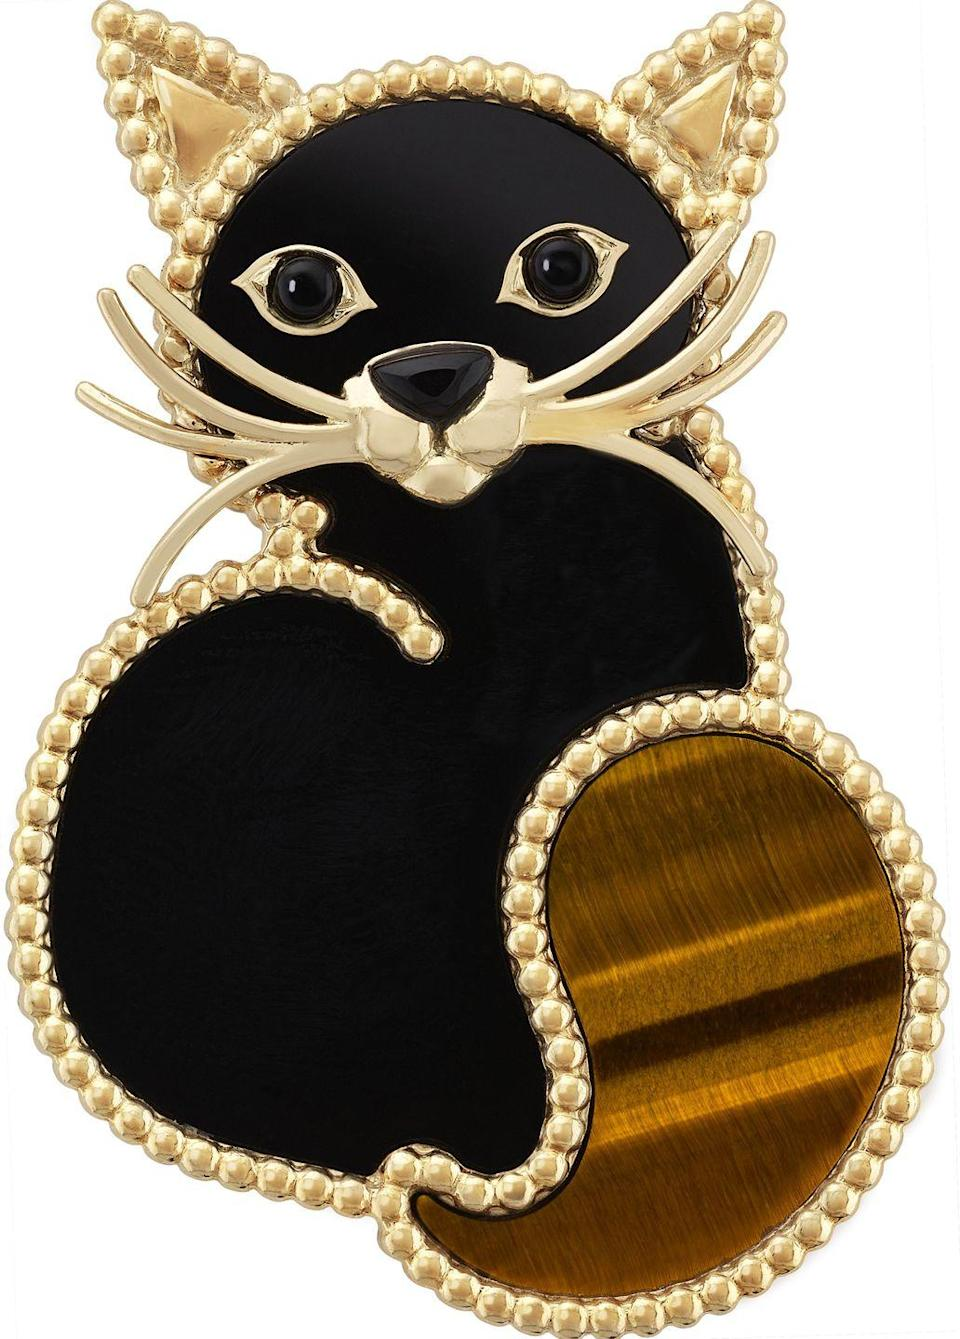 """<p><a class=""""link rapid-noclick-resp"""" href=""""https://www.vancleefarpels.com/gb/en/collections/jewelry/fauna/lucky-animals/vcarp2aw00-lucky-animals-cat-clip.html"""" rel=""""nofollow noopener"""" target=""""_blank"""" data-ylk=""""slk:SHOP NOW"""">SHOP NOW</a></p><p>This purrrrfect little pin by Van Cleef & Arpels will bring feline fabulousness to any outfit. </p><p>Gold, onyx and tiger's eye clip, £4,950, Van Cleef & Arpels</p>"""